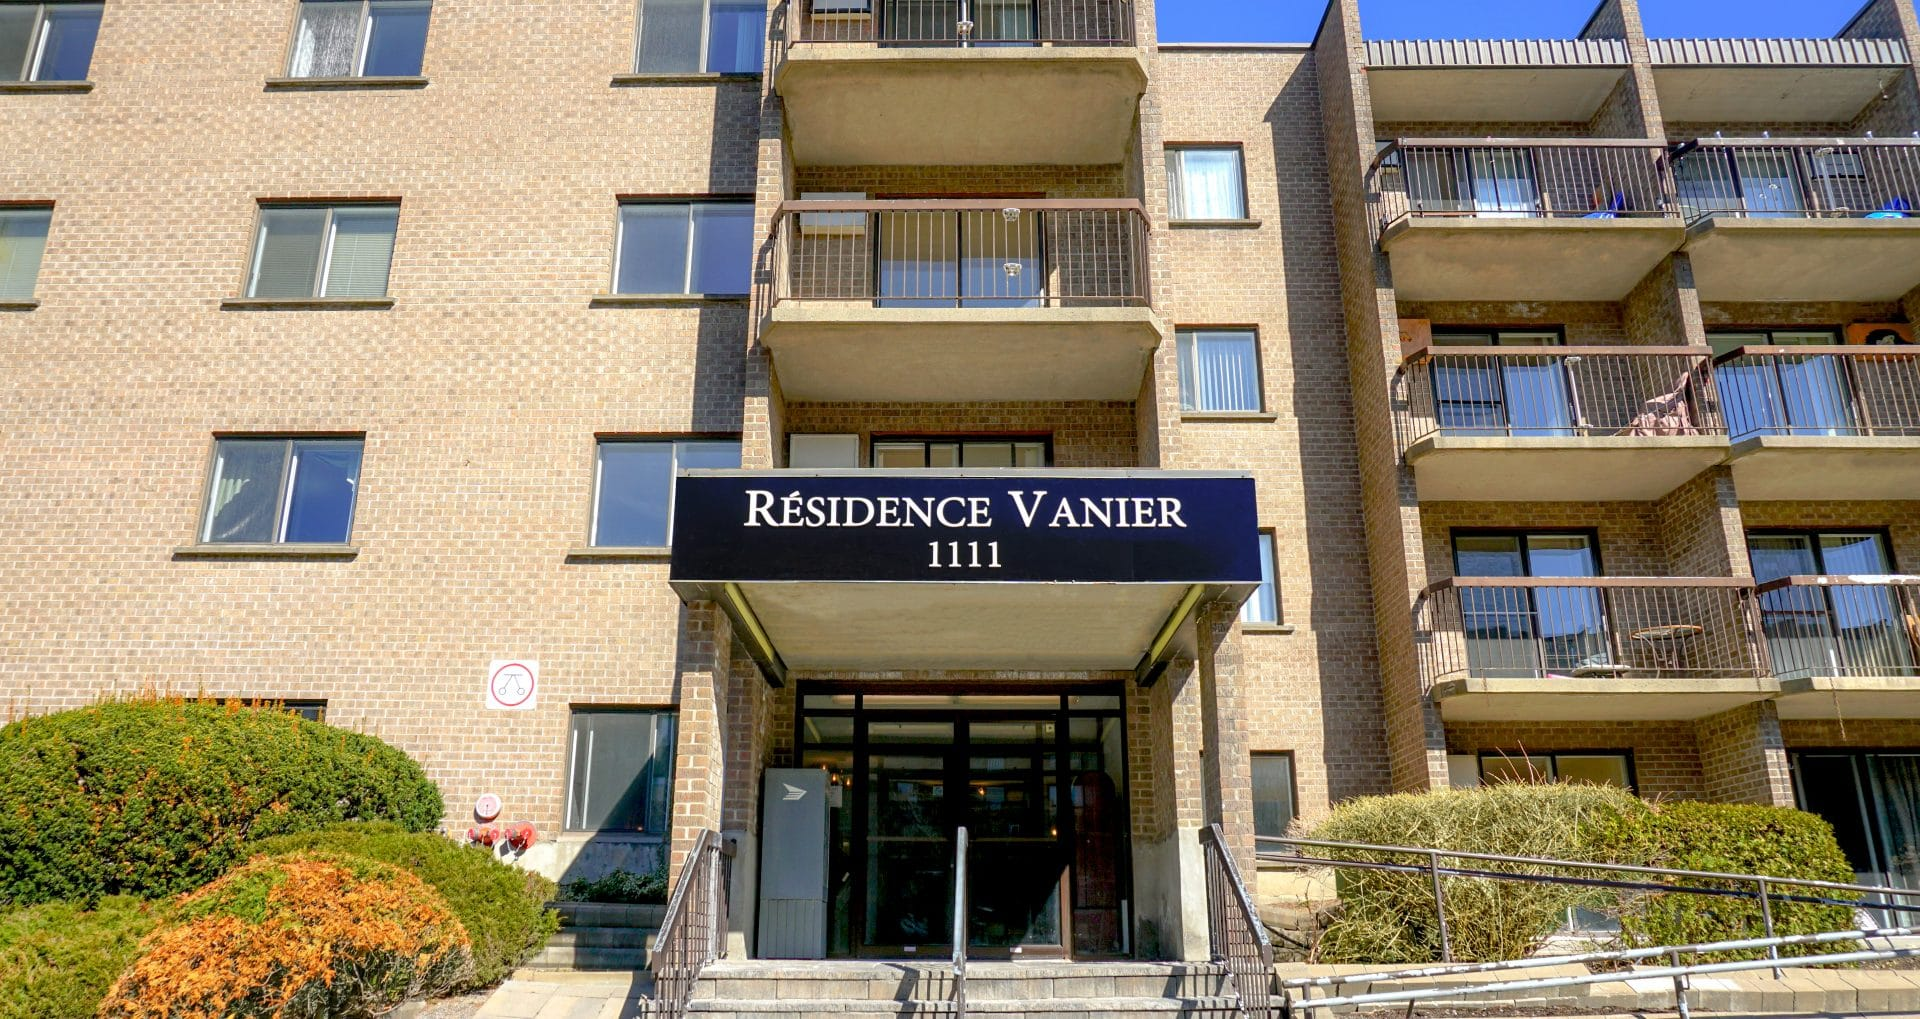 Residence Vanier - Appartement pour personnes agees - 008